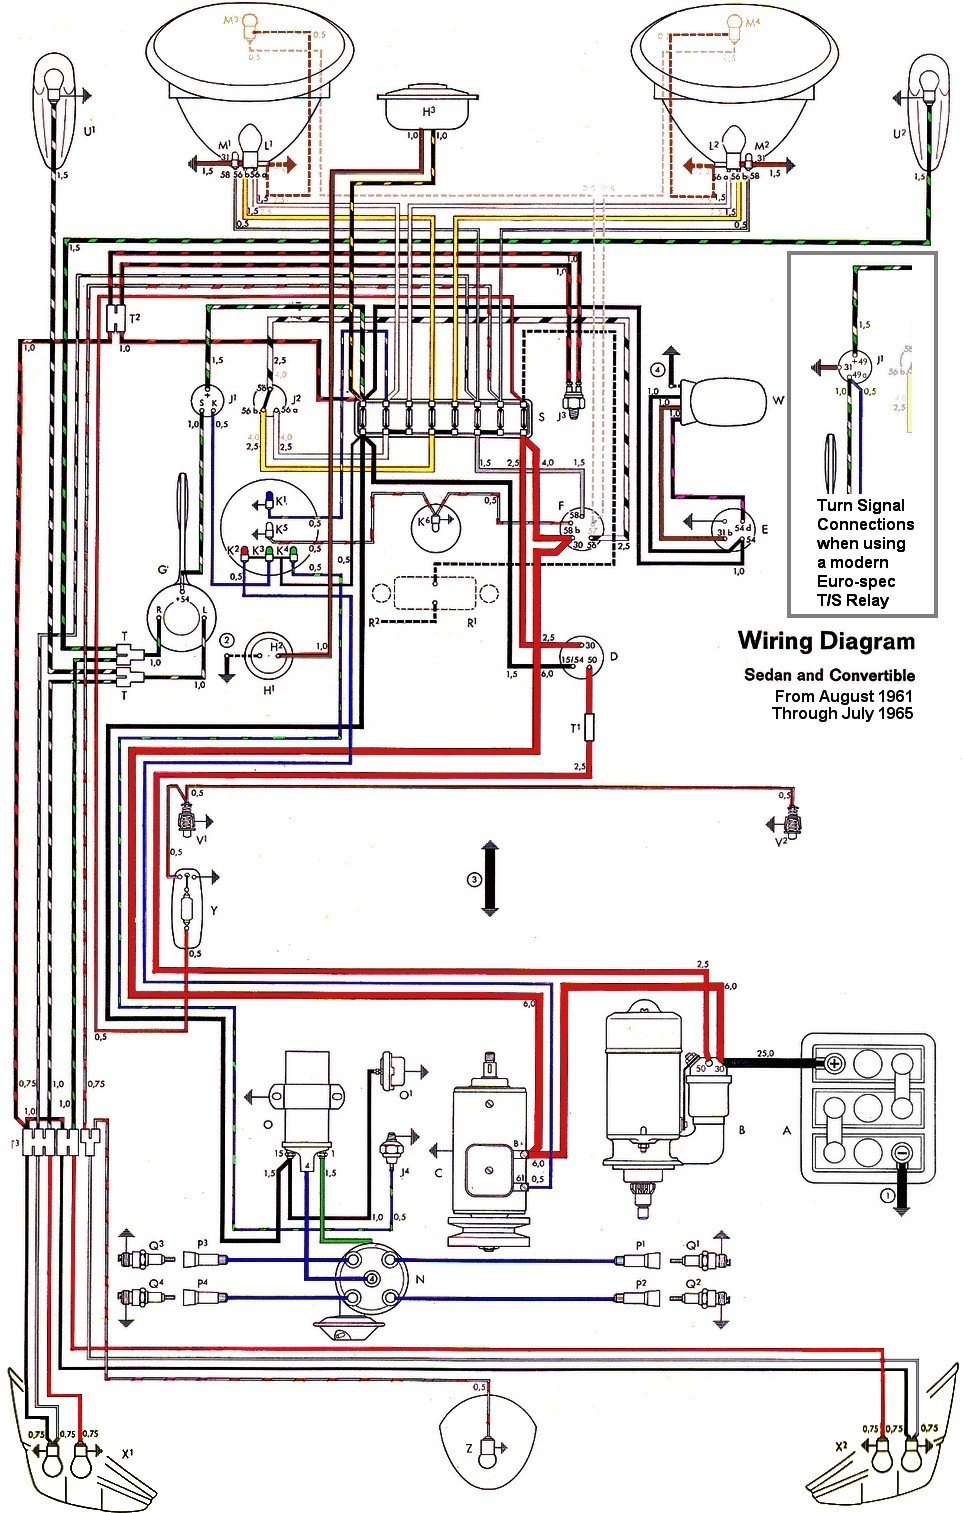 bug_62 65withinset free wiring diagrams \u2022 205 ufc co 1965 vw bus wiring harness at alyssarenee.co